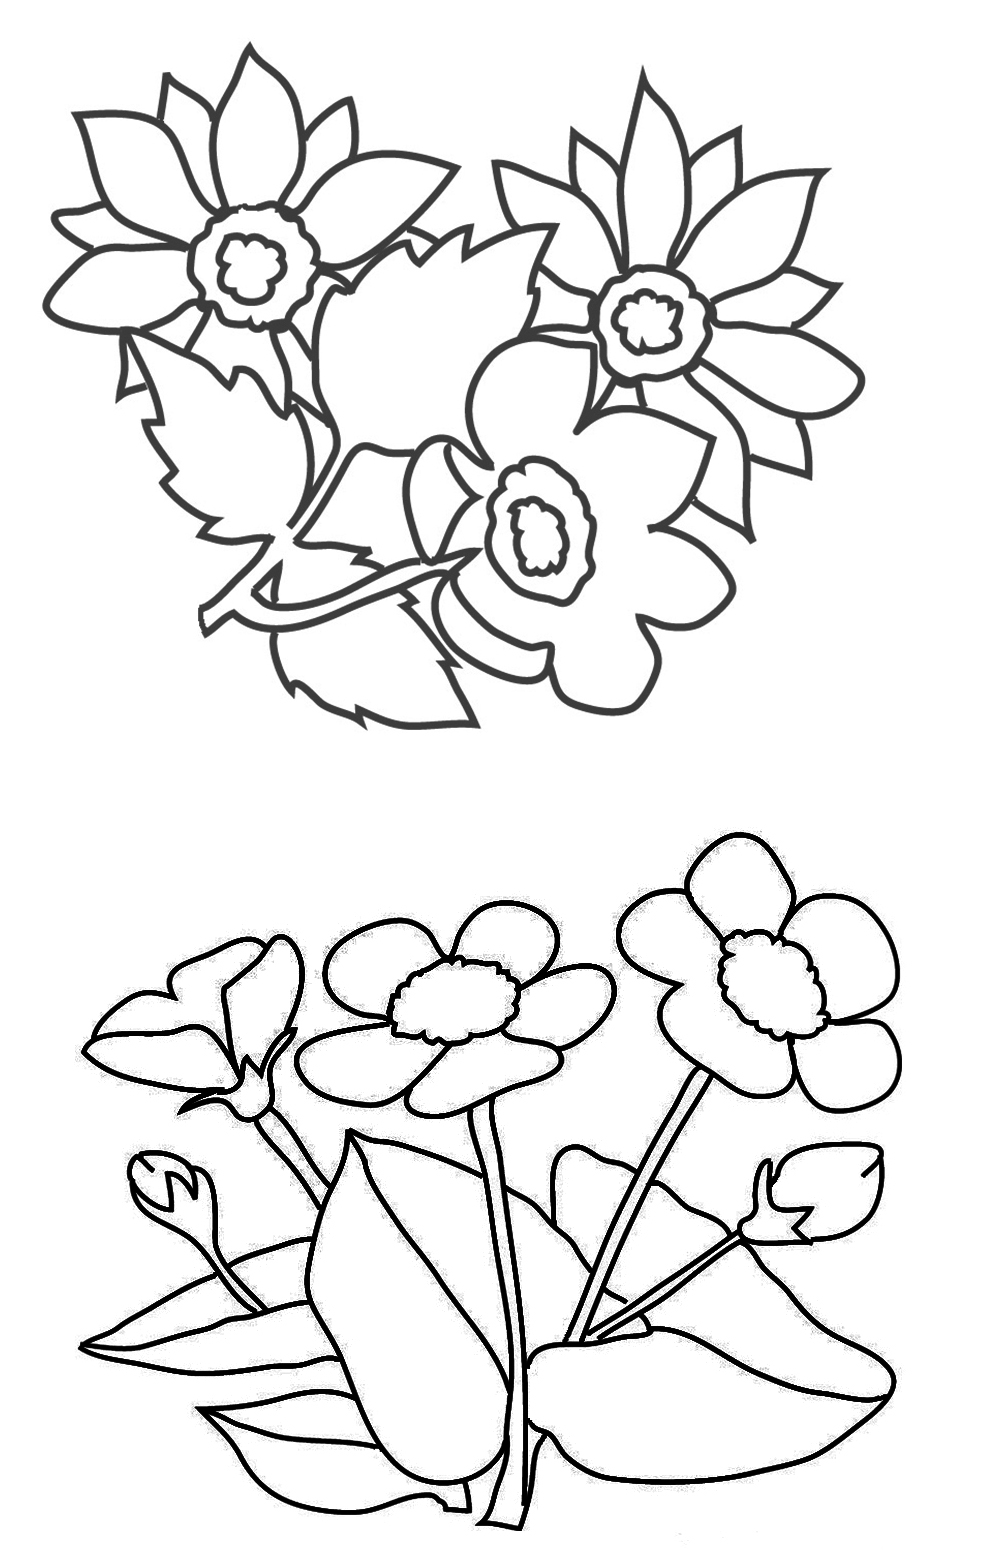 Flower Coloring Pages Flower Coloring Pages